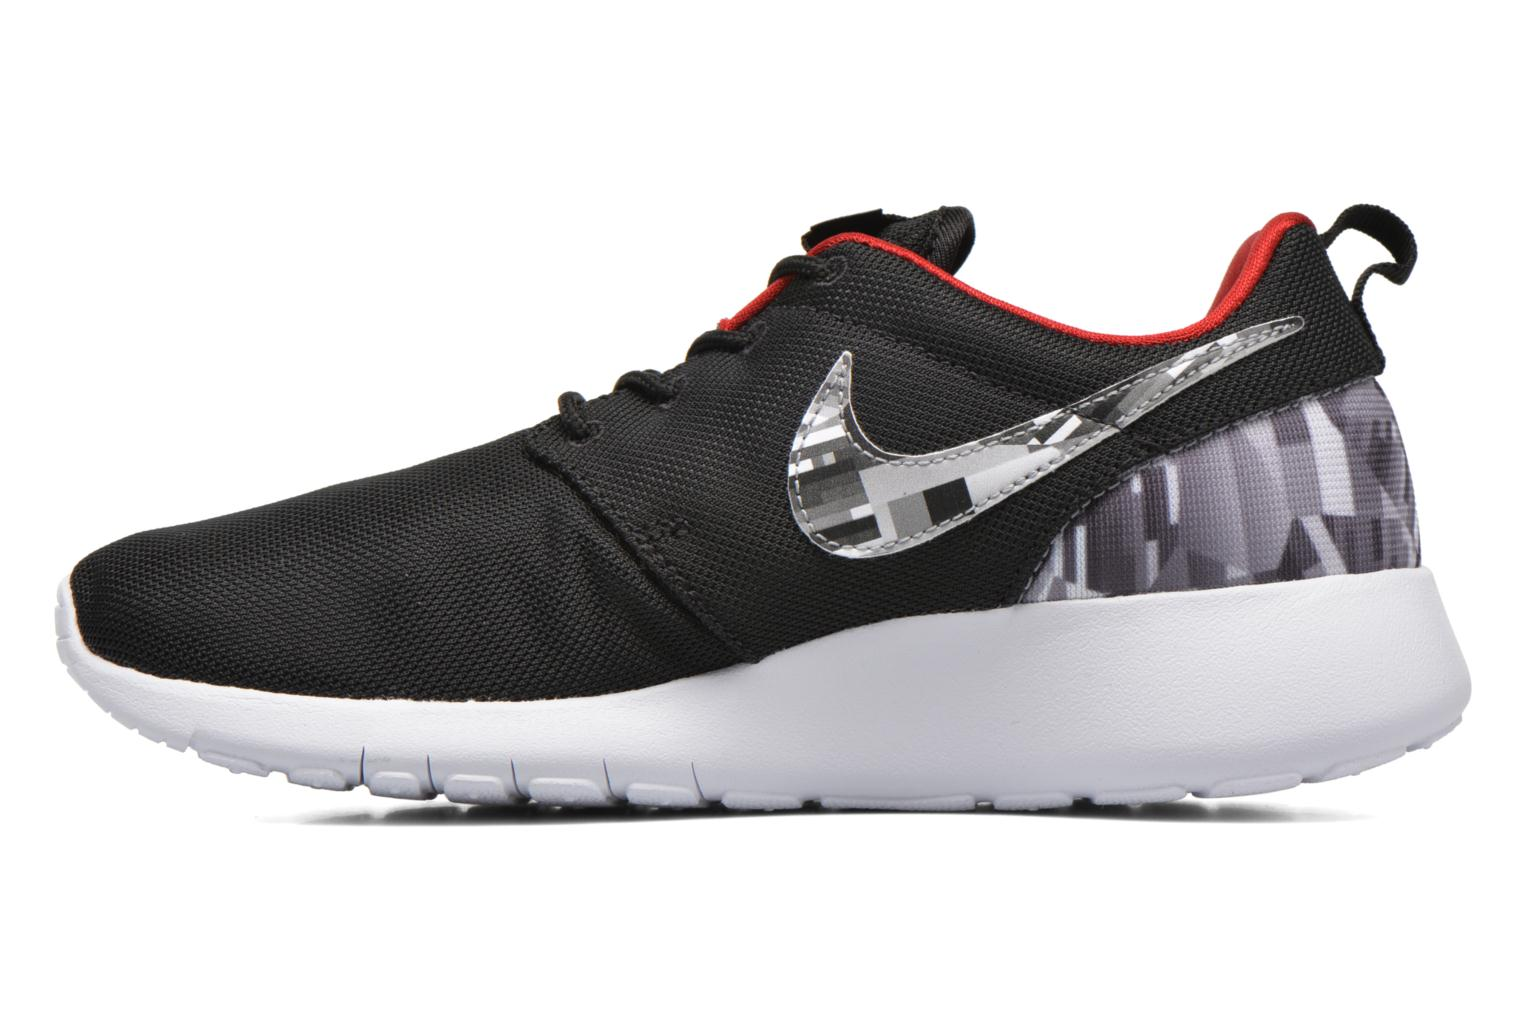 NIKE ROSHE ONE PRINT (GS) Black/Wolf Grey-Gym Red-White